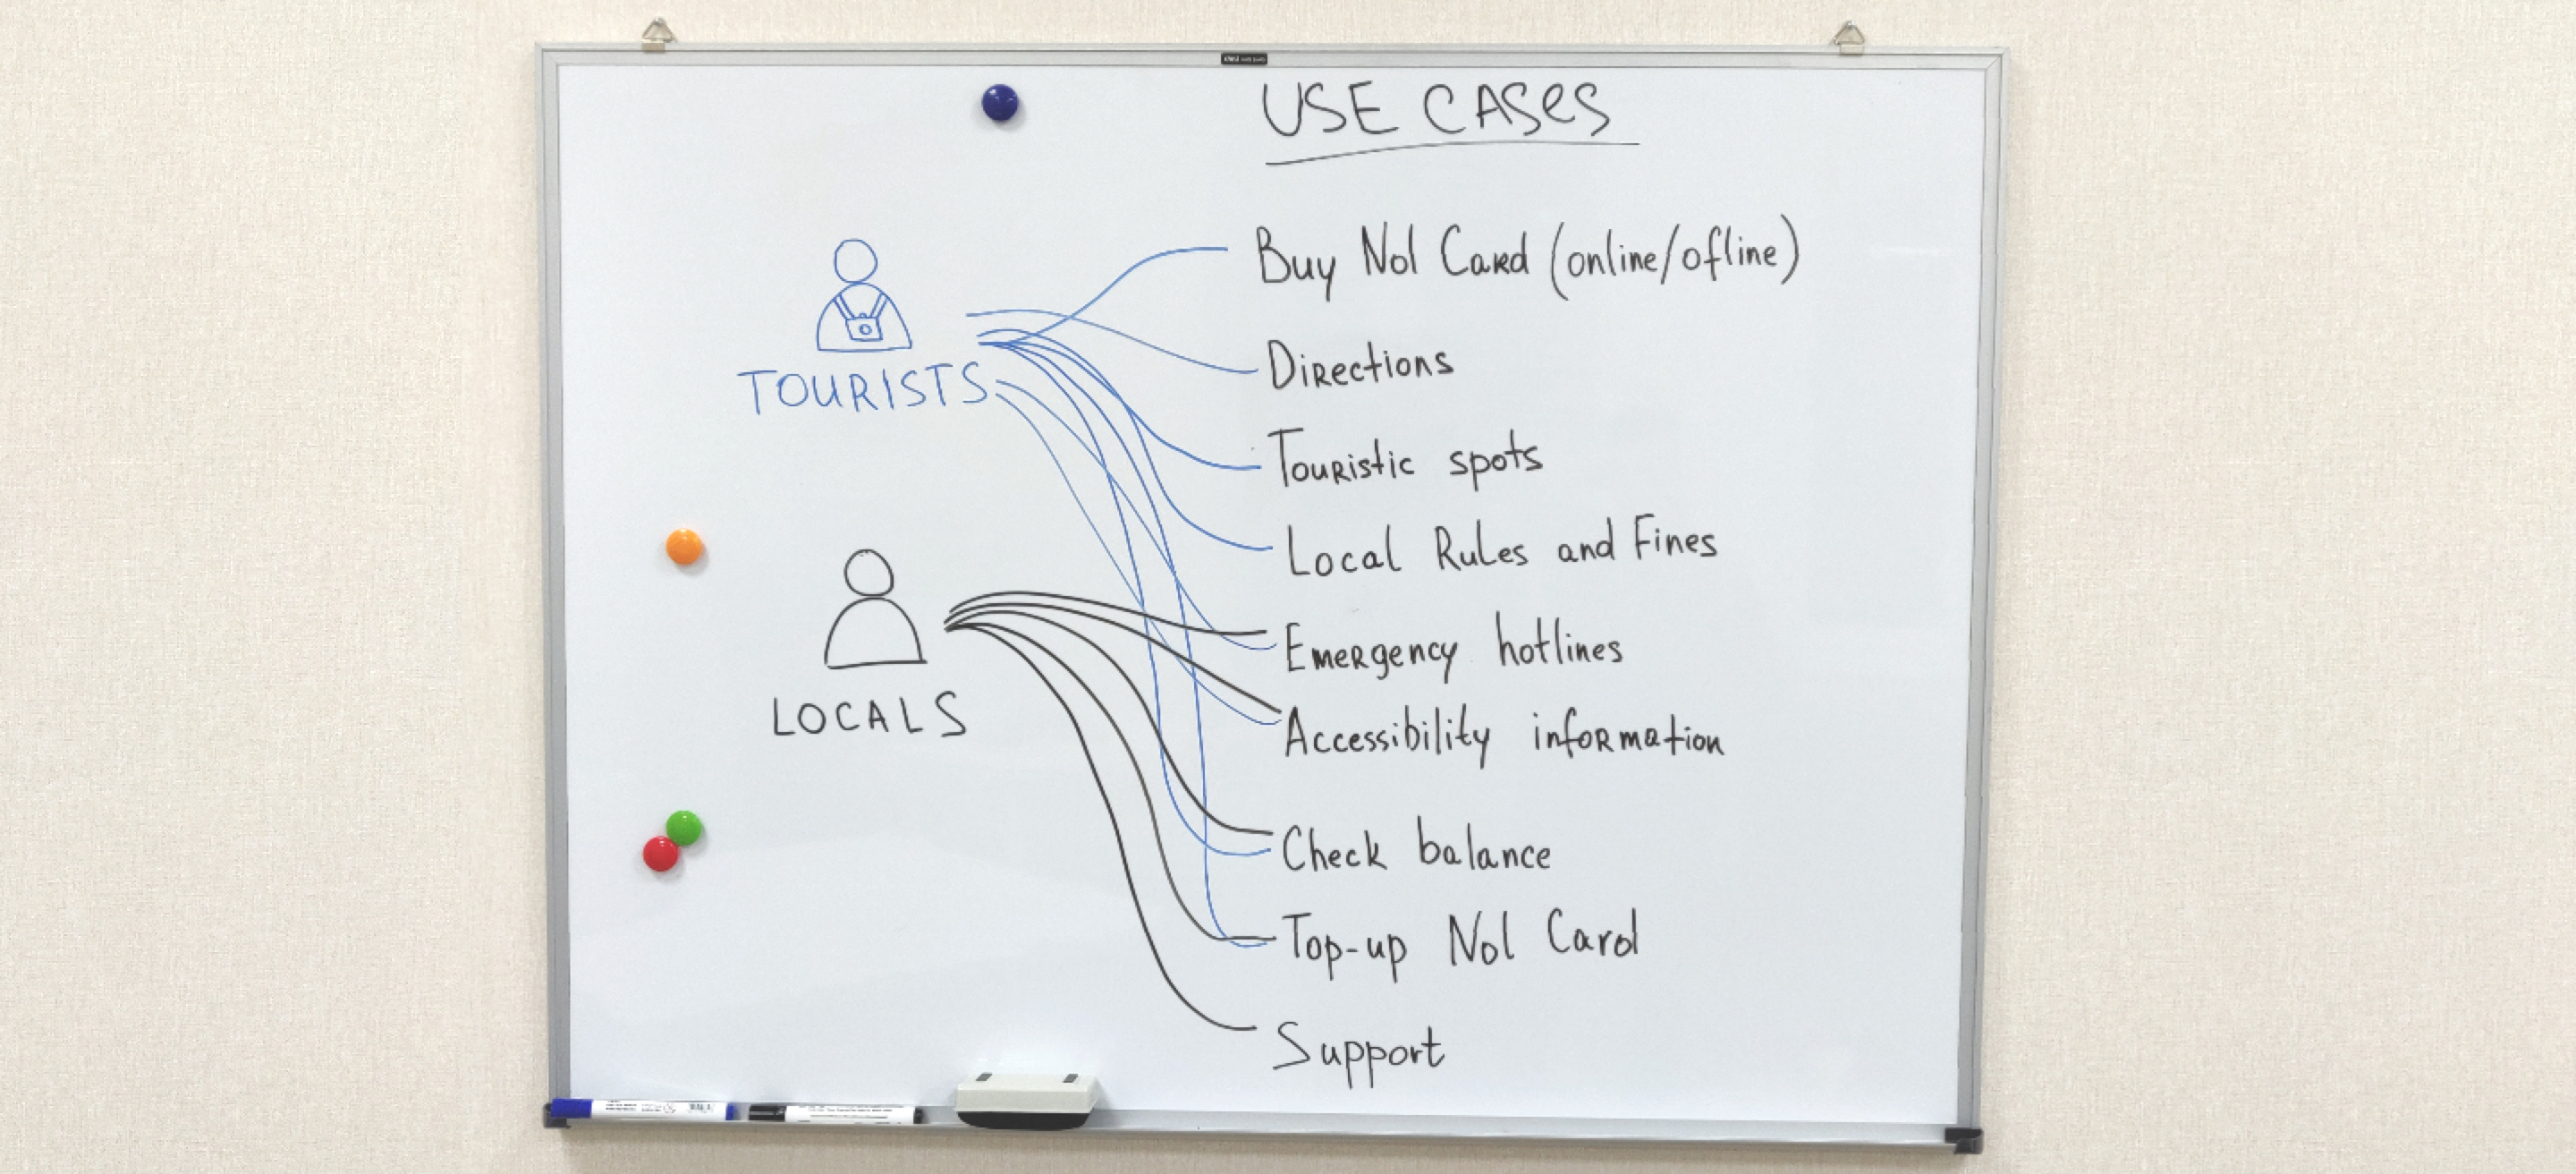 Use cases whiteboard